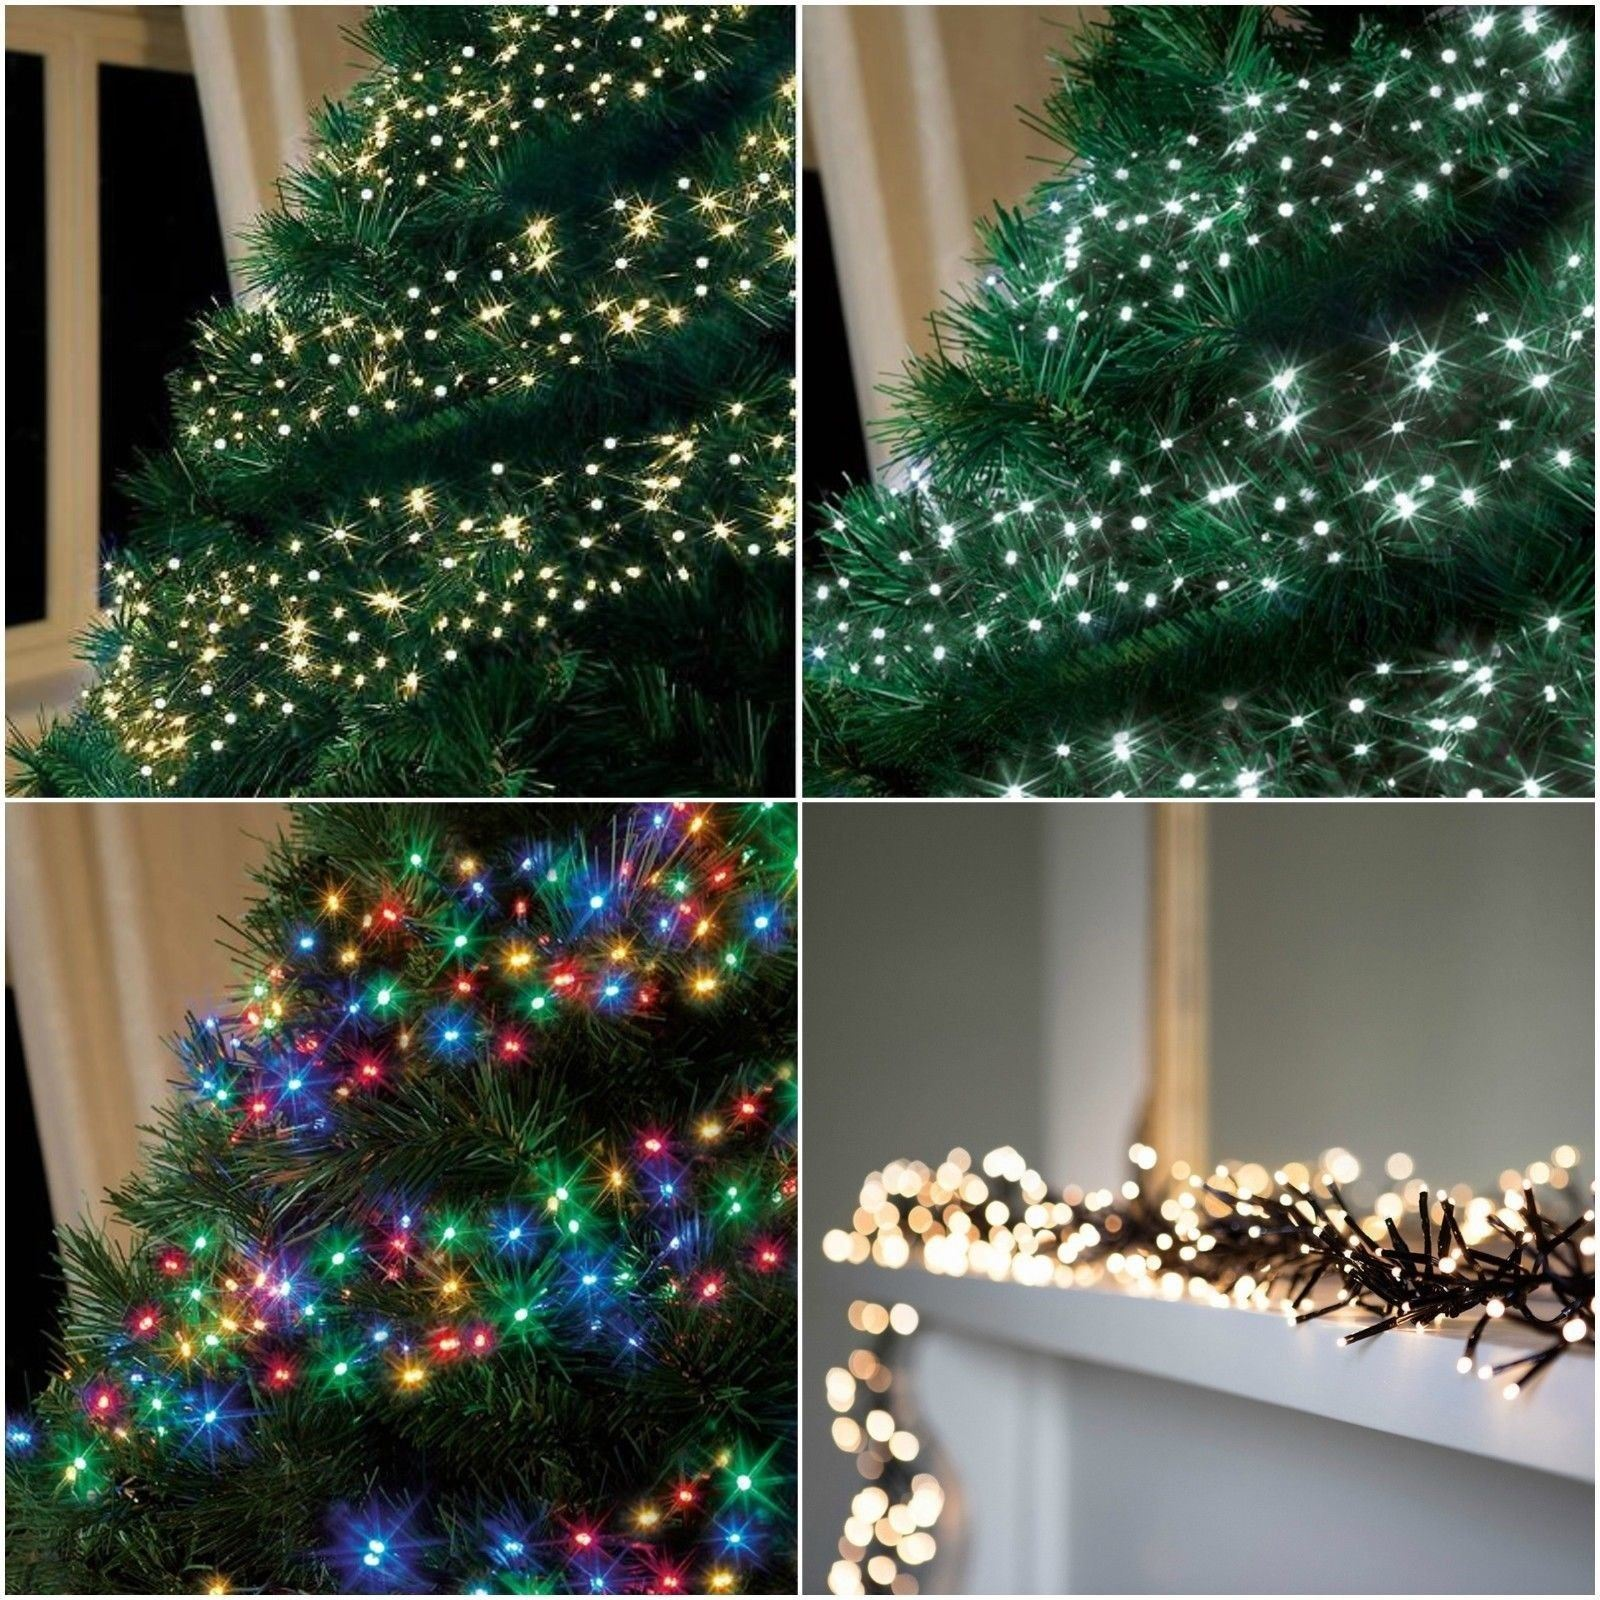 280 led christmas cluster lights string indoor outdoor multi colour decoration